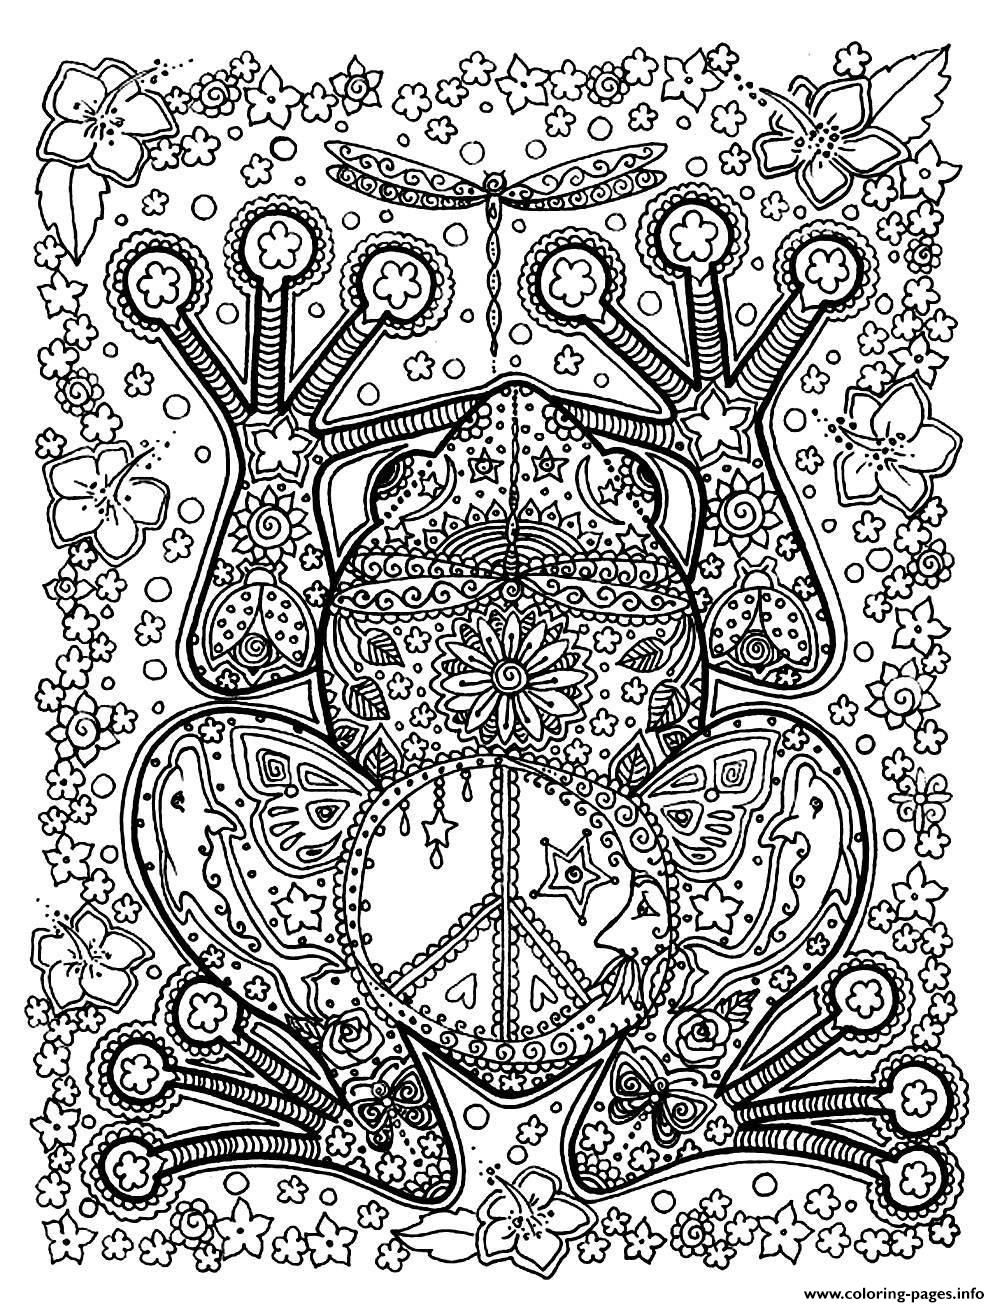 Print adult animals big frog coloring pages | I LOVE COLORING ...